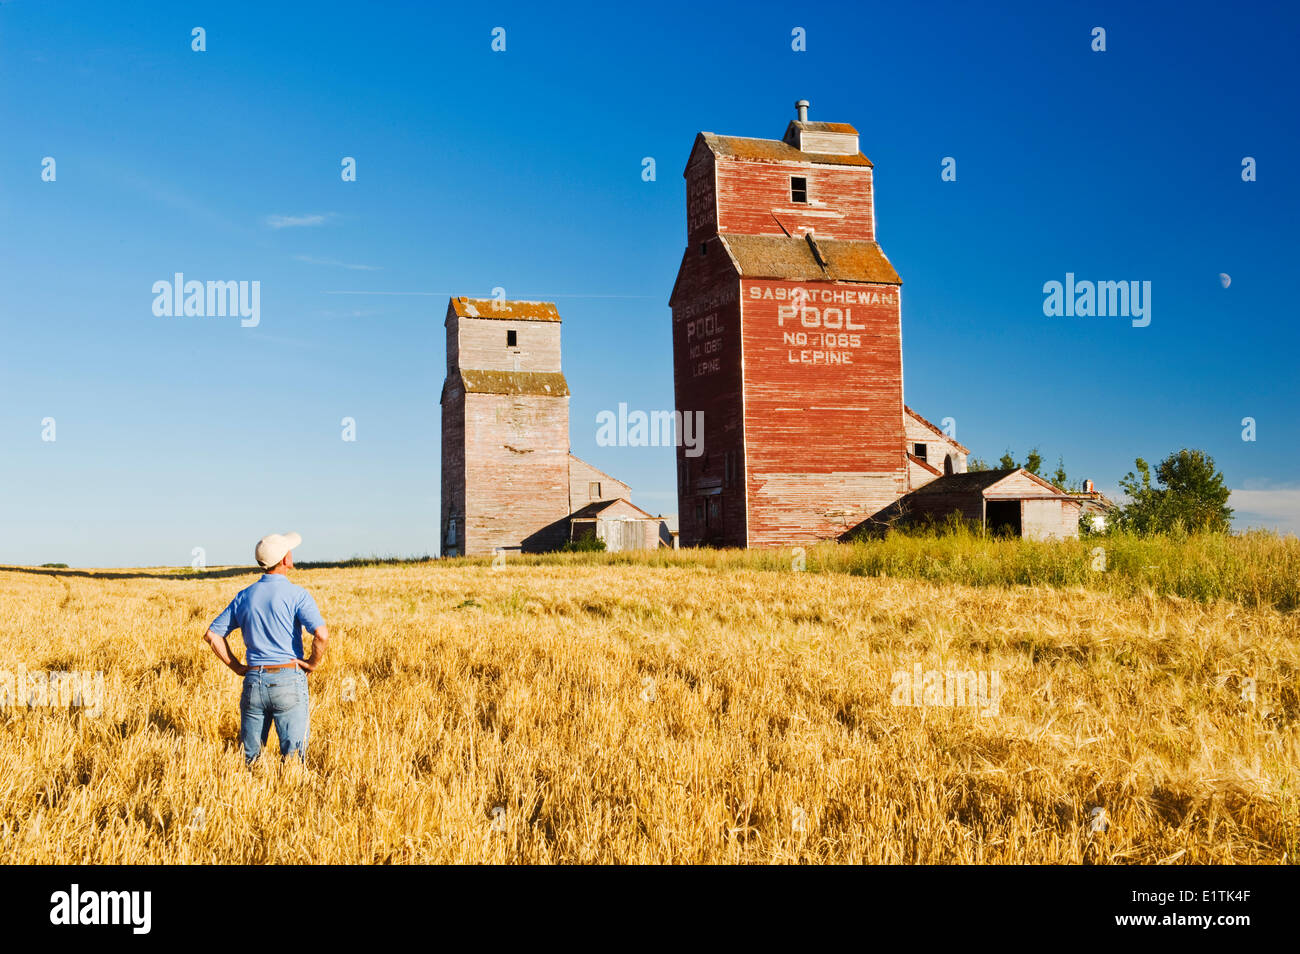 a man looks out over a barley field and grain elevators, abandoned town of Lepine, Saskatchewan, Canada - Stock Image